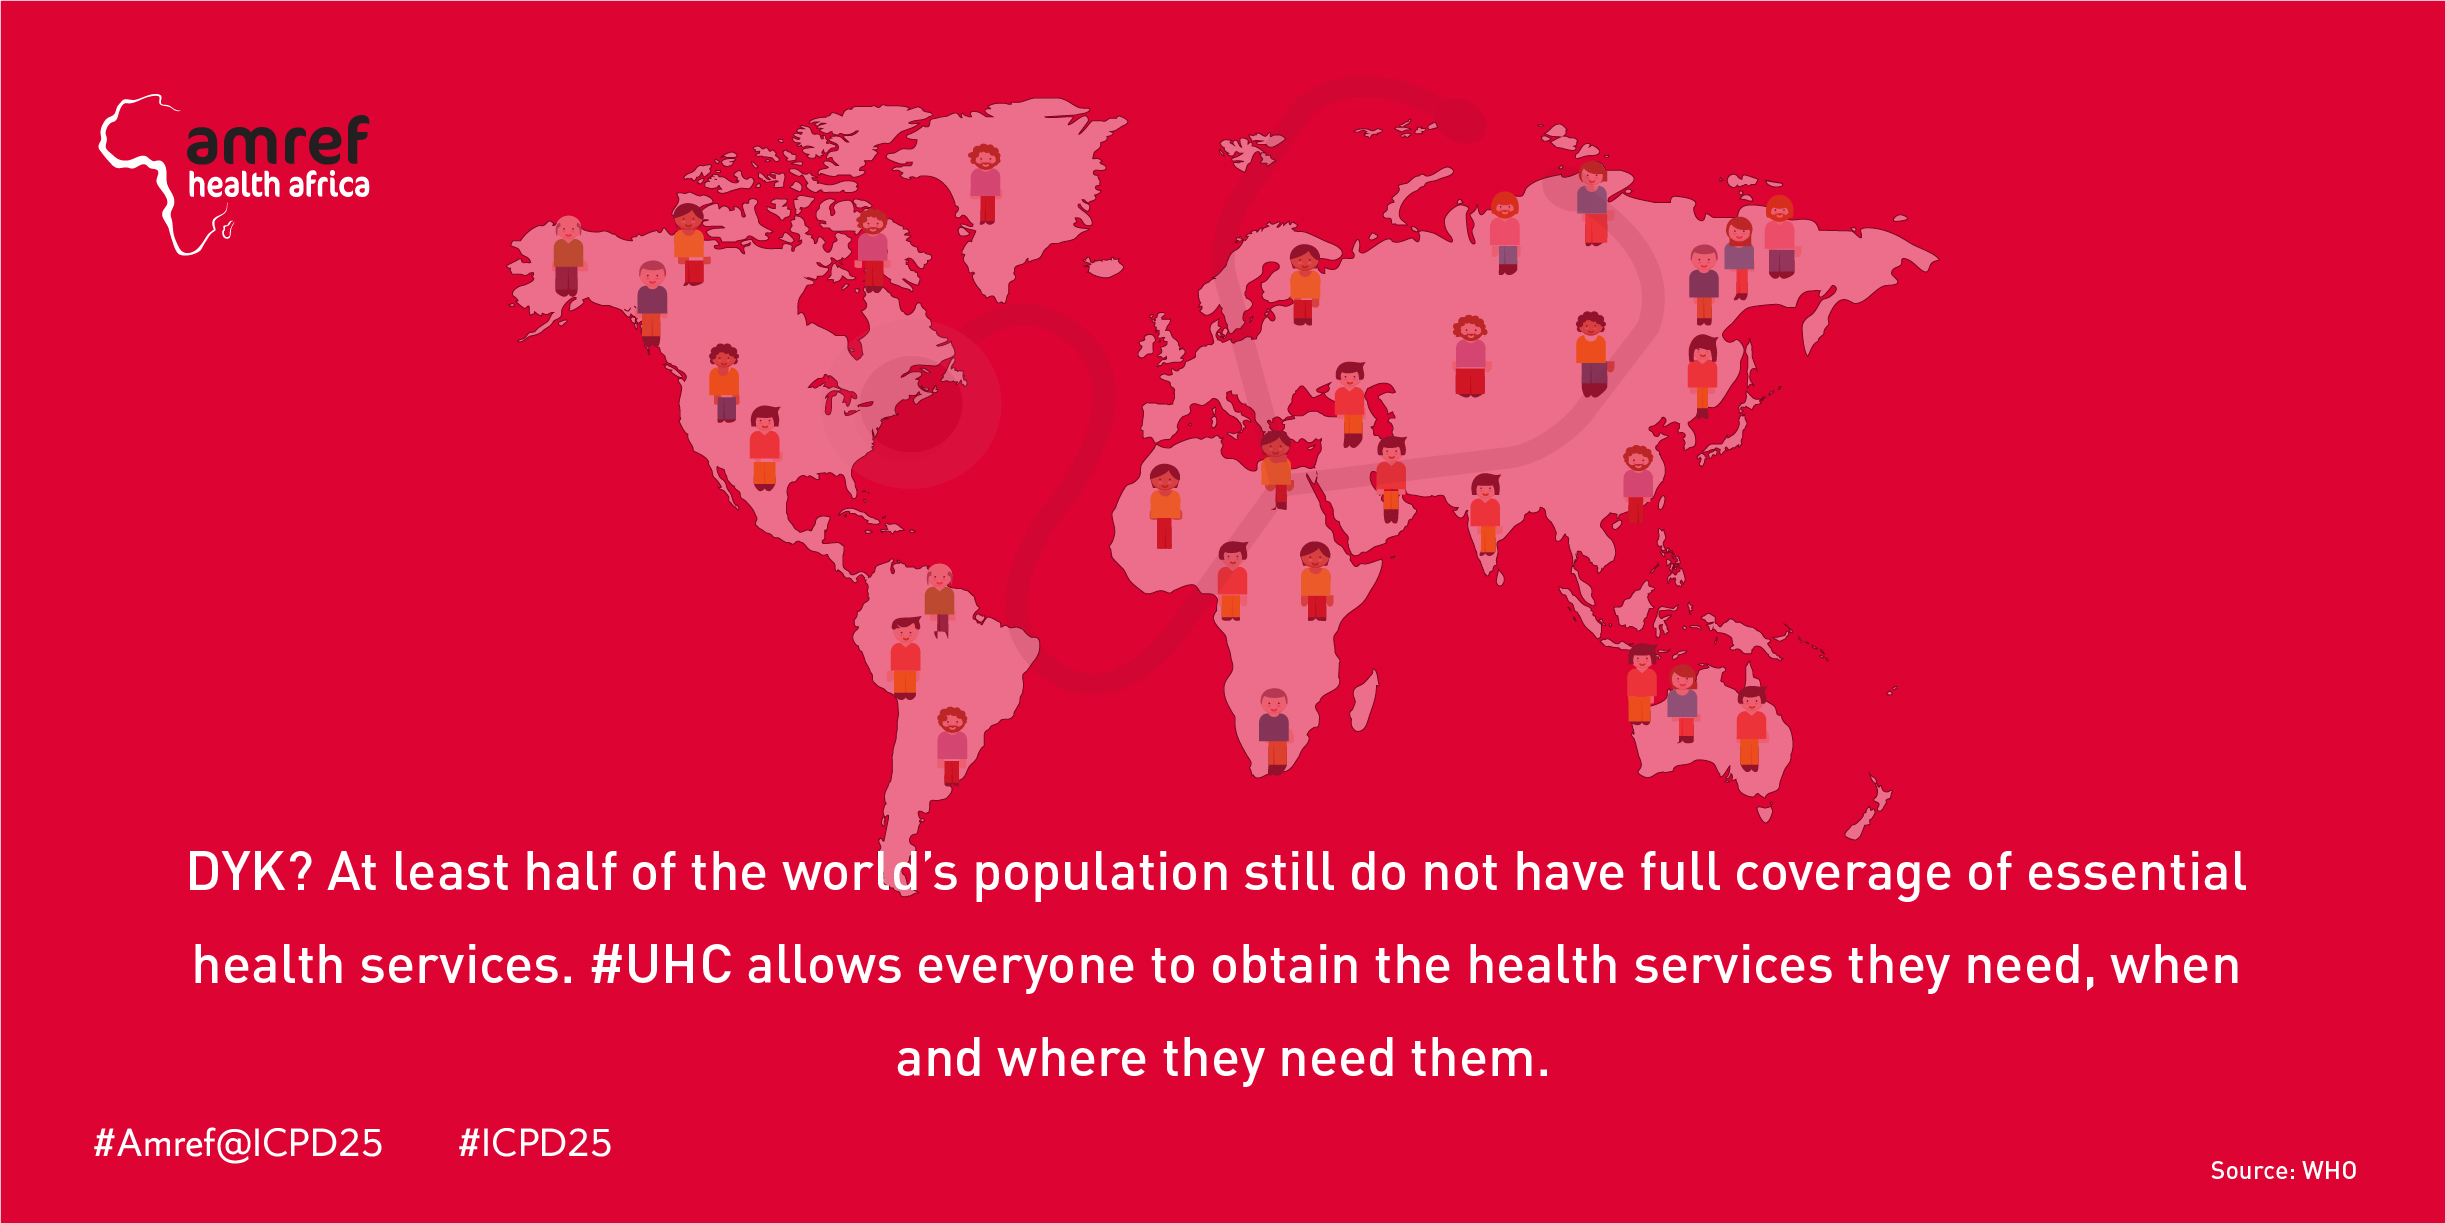 AMREF@ICPD25 CONFERENCE